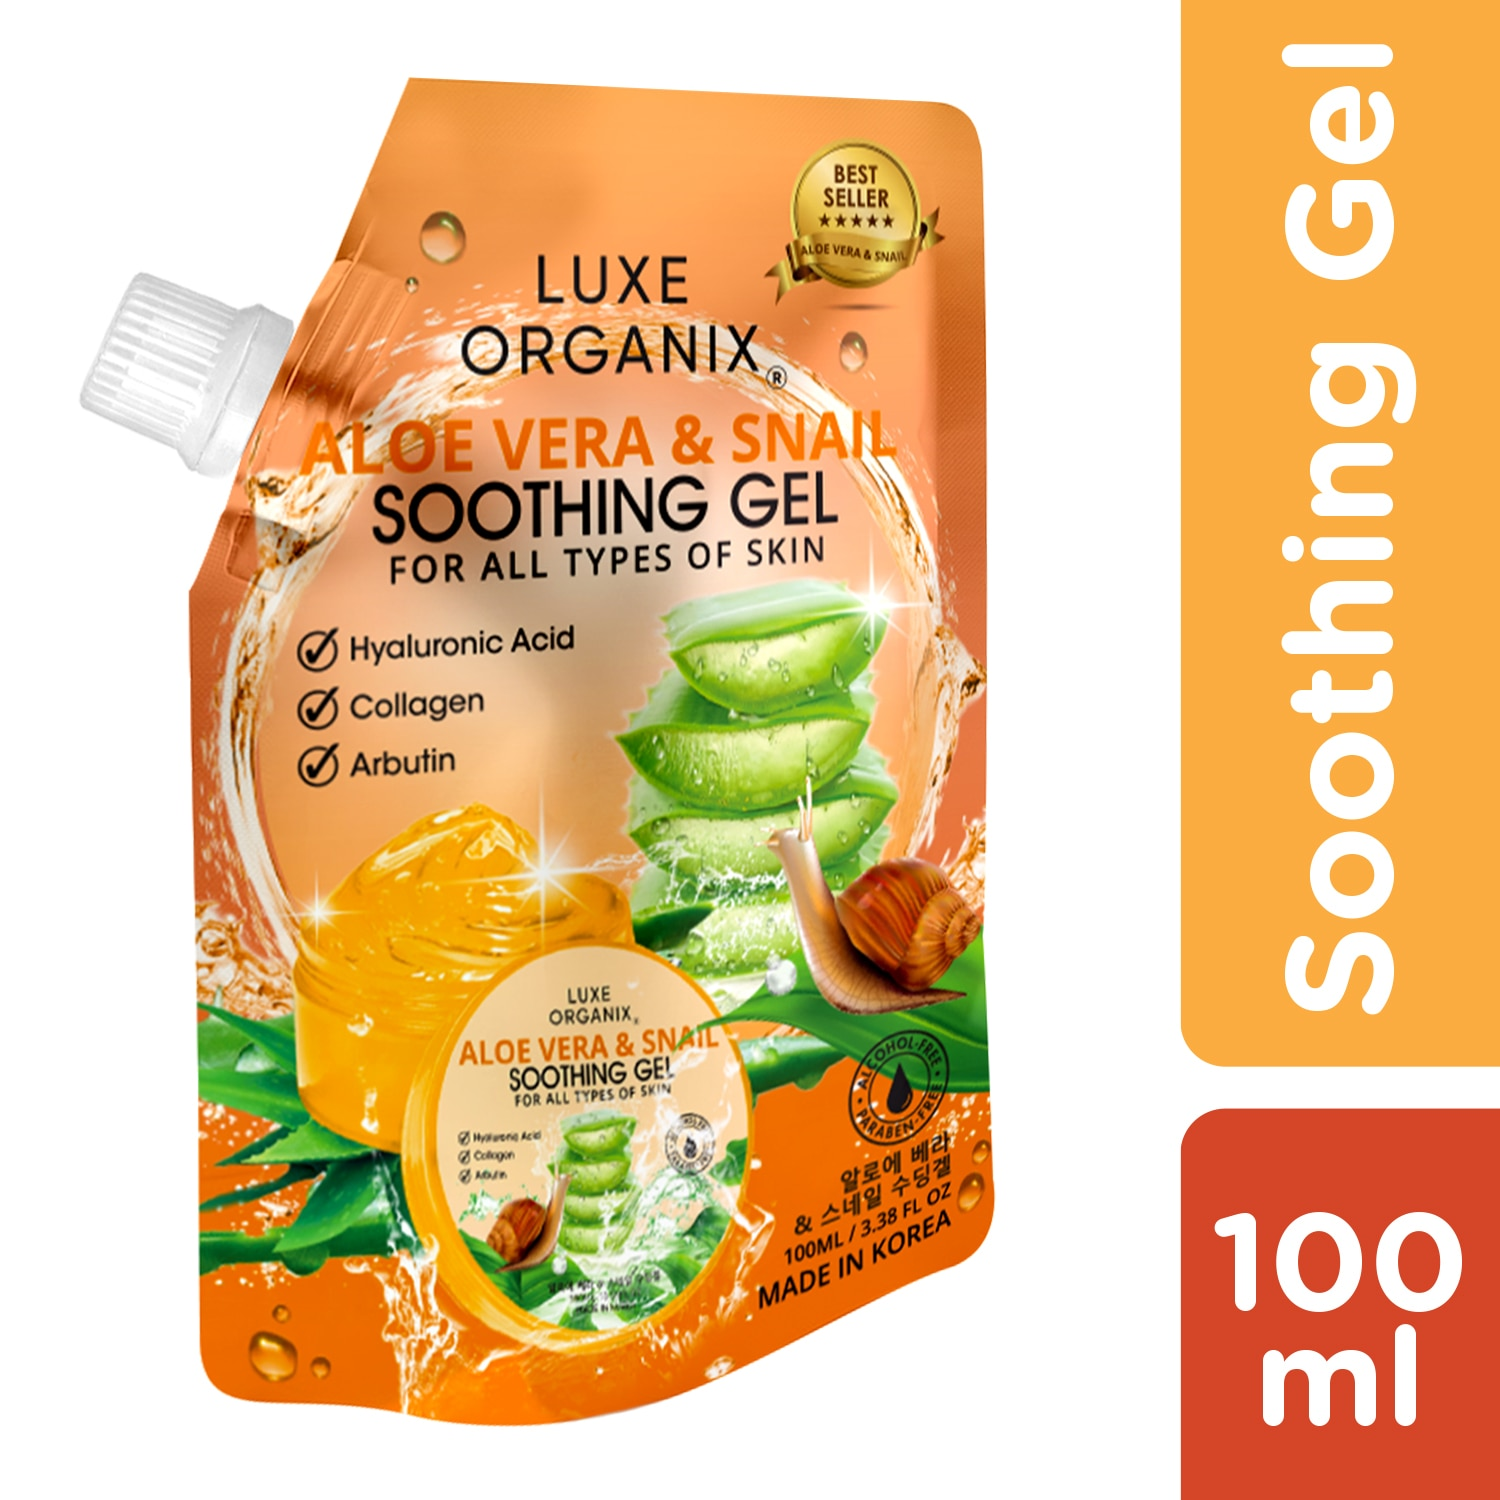 LUXE ORGANIXLuxe Organix Soothing Gel Aloe Vera & Snail 100ml,For WomenBest Selling Products